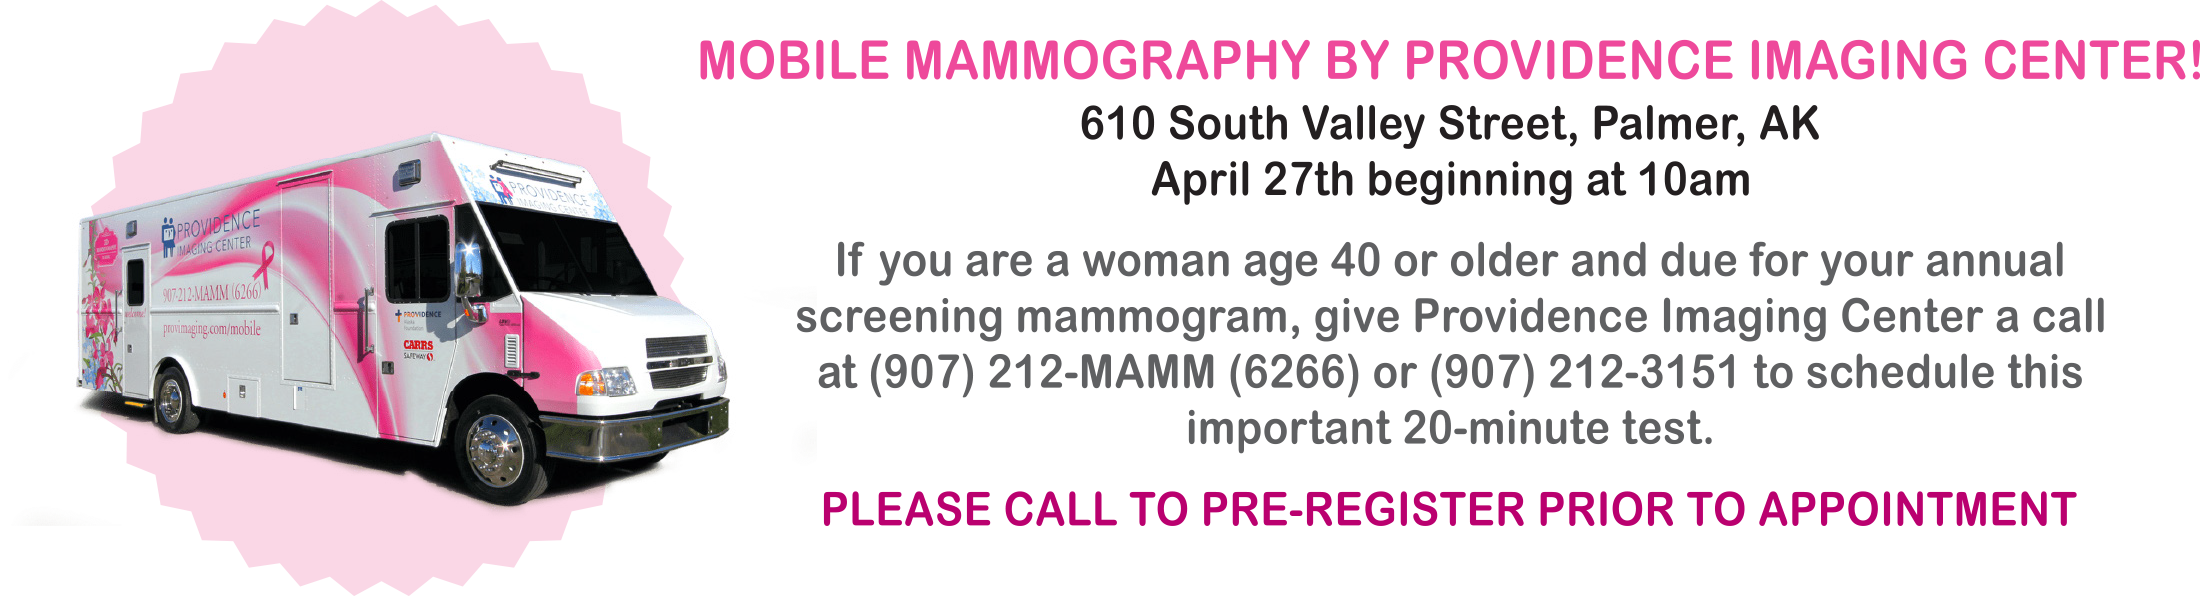 Mobile Mammography for Web.png